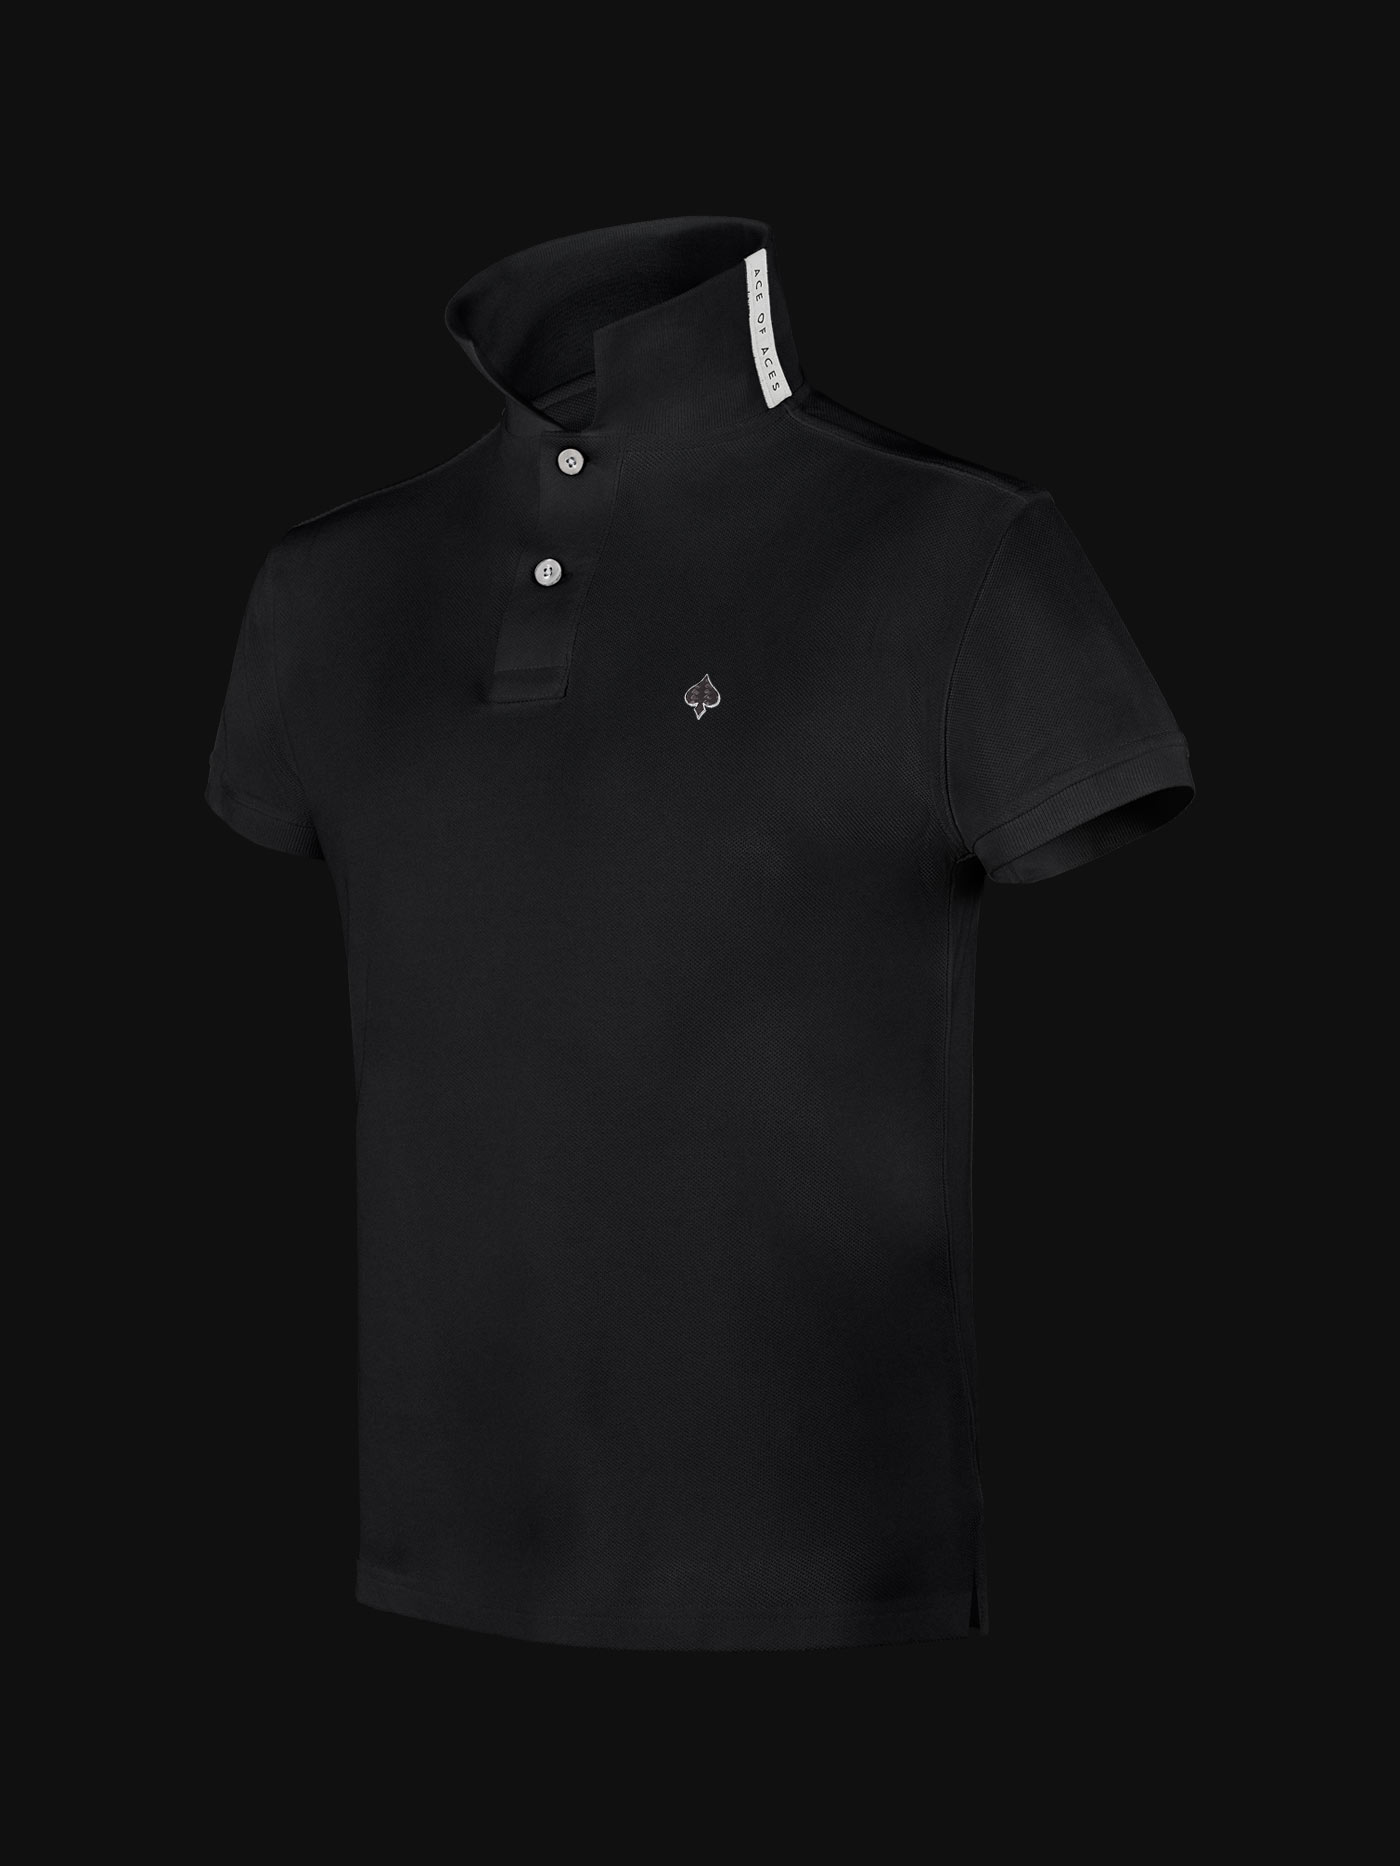 The exclusive Black Ace Limited Edition Man Polo Shirt side